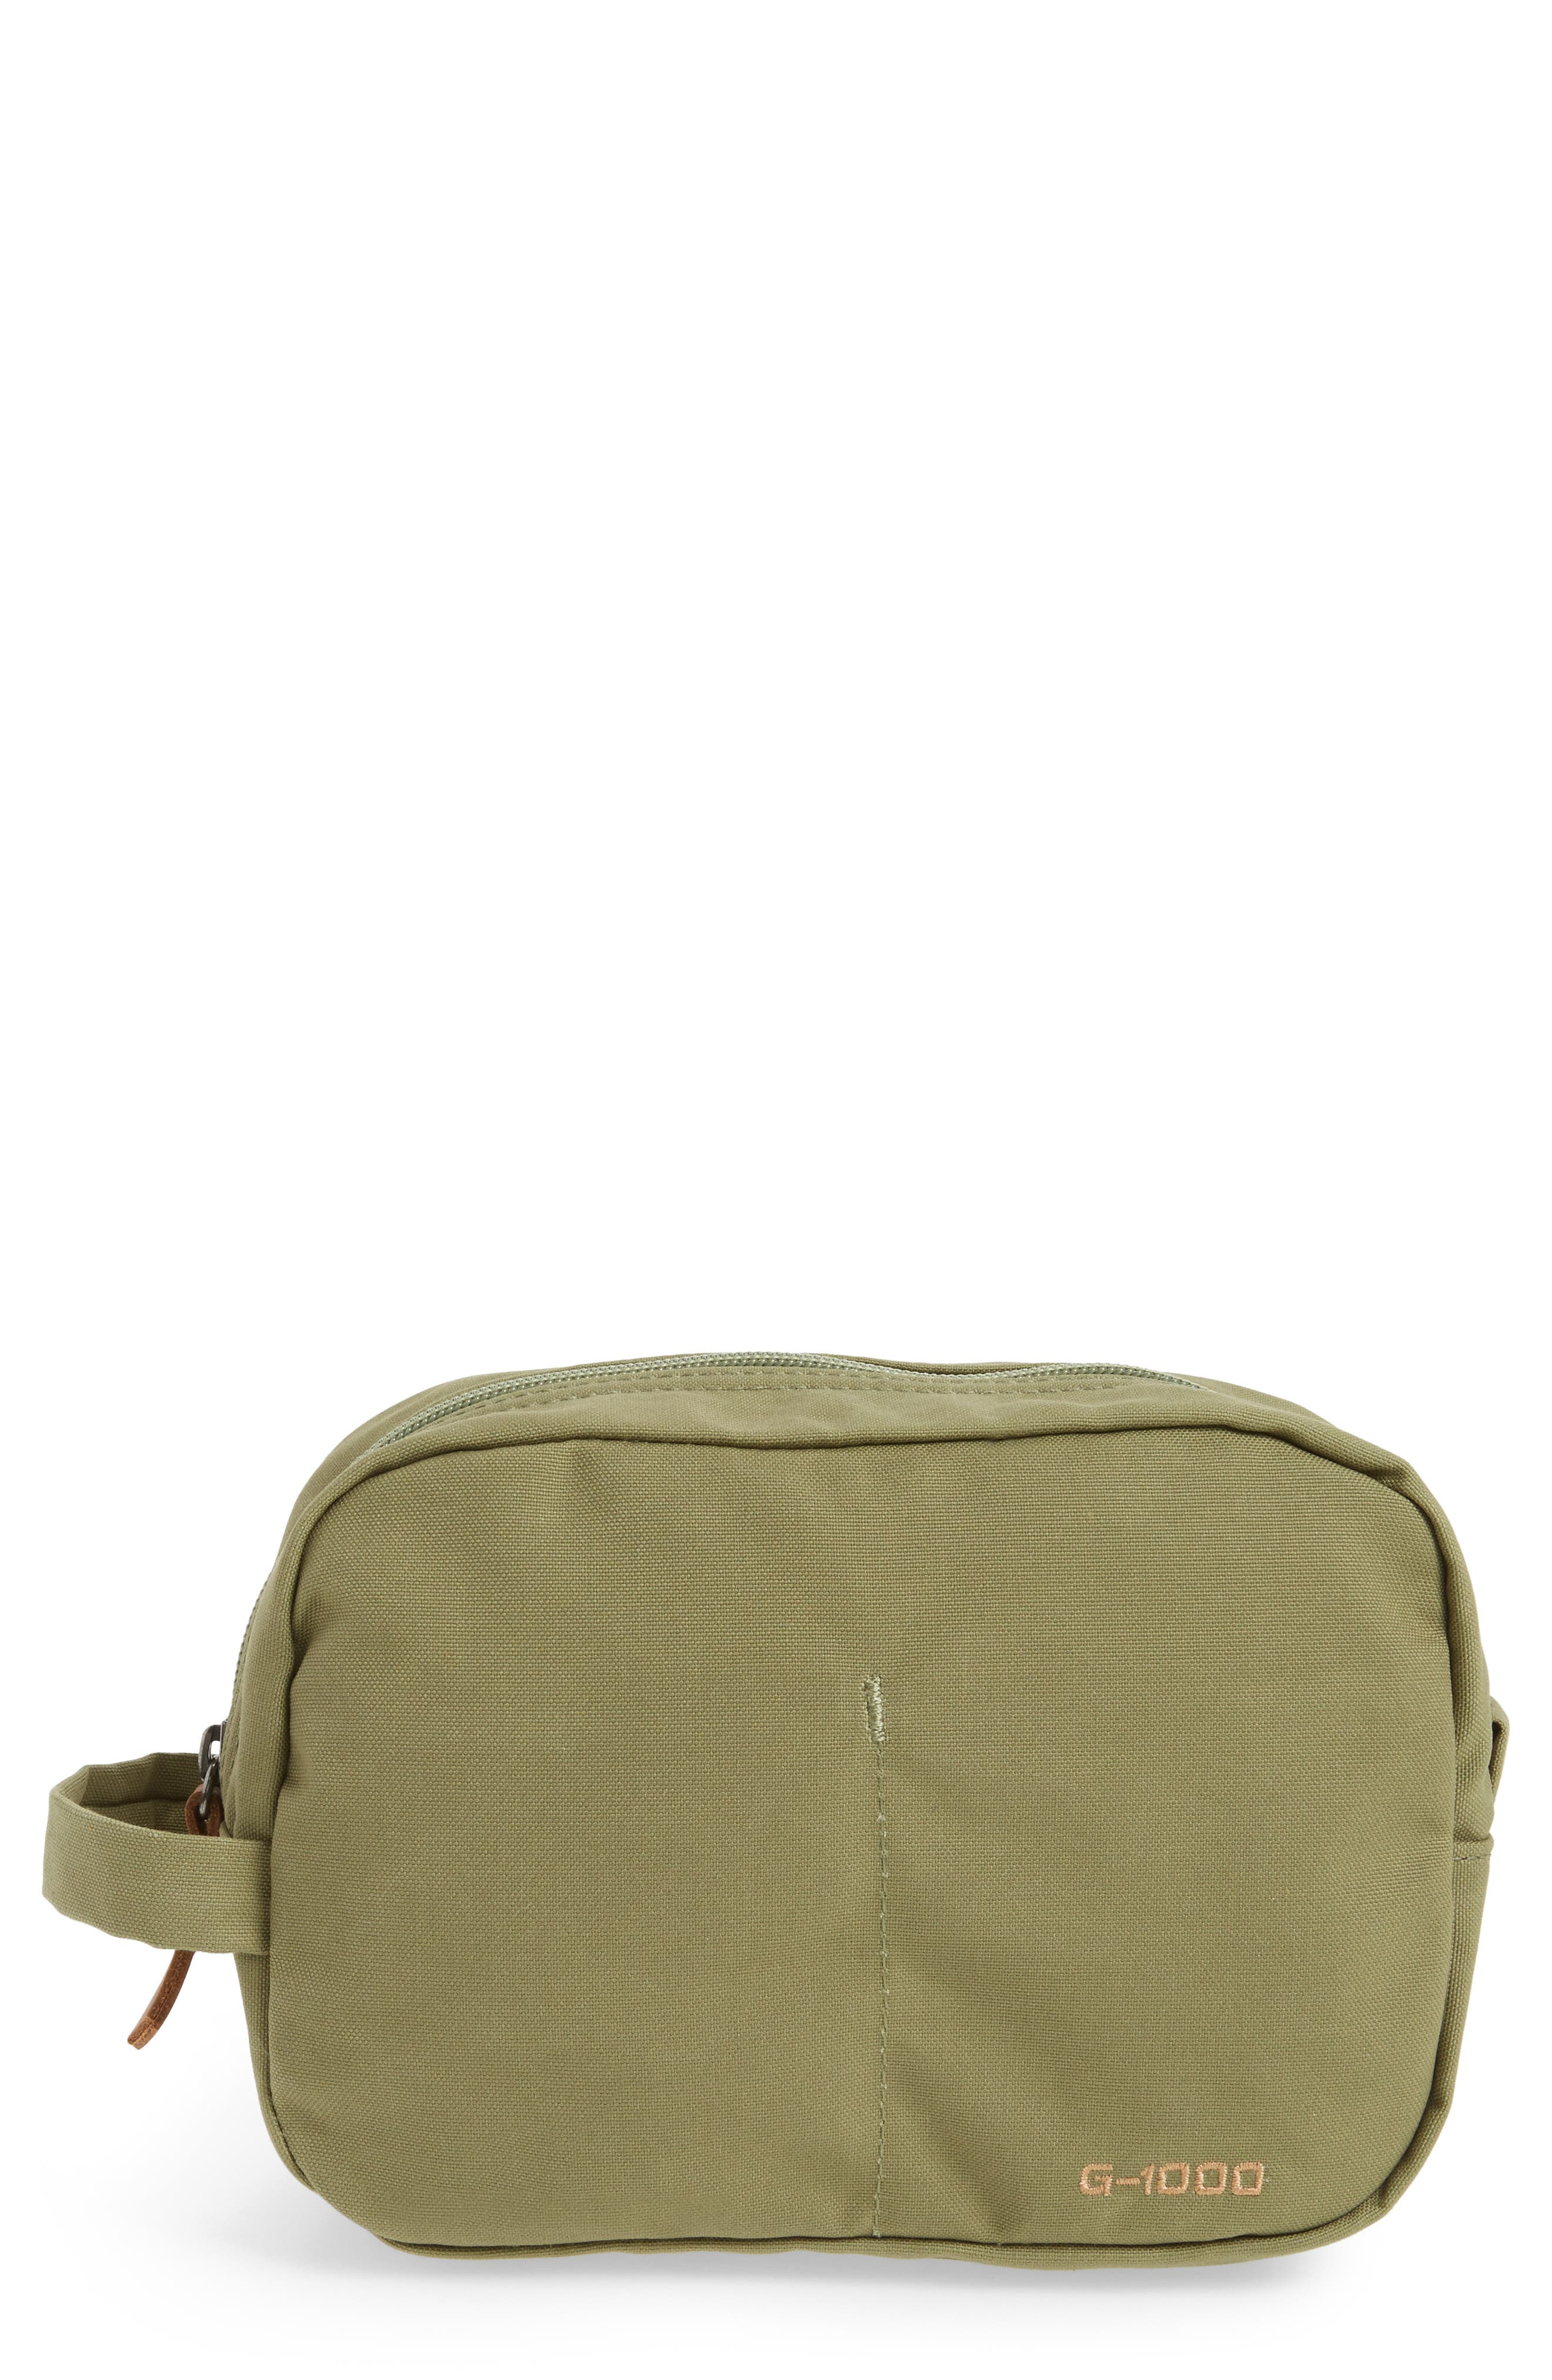 Water Resistant Gear Bag Pouch,                             Alternate thumbnail 2, color,                             Green